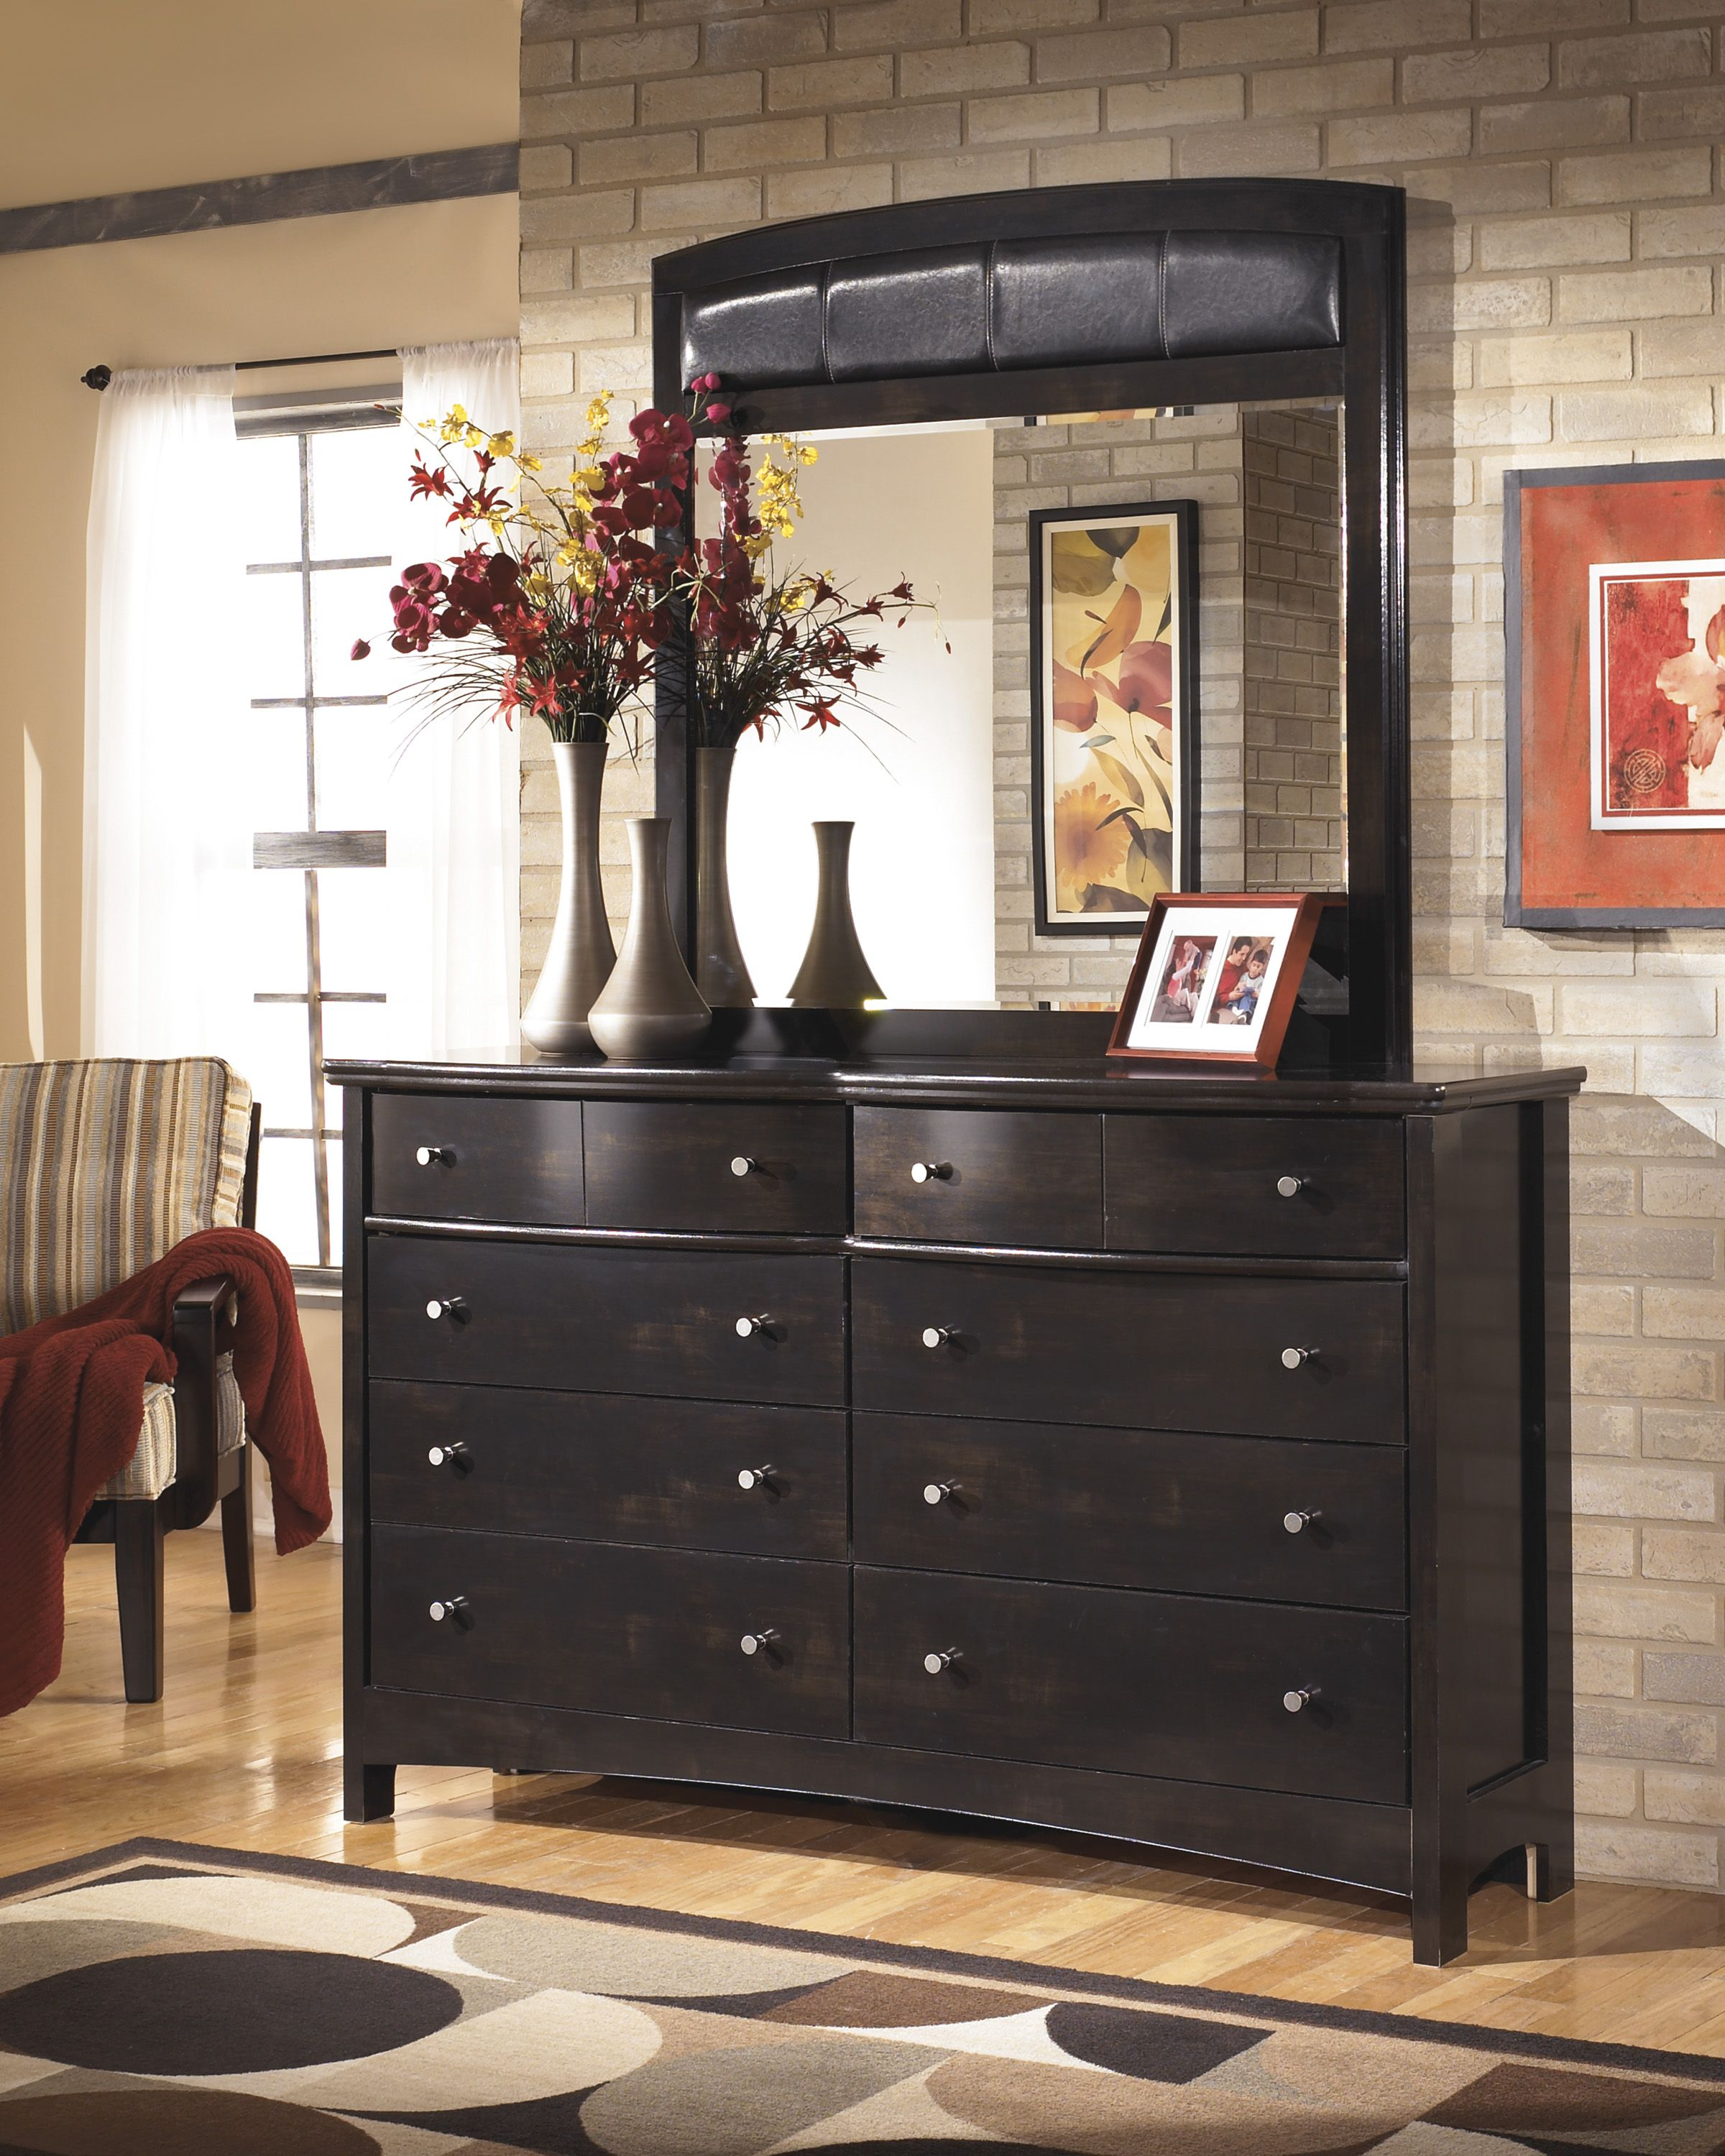 Large scaled dresser has ample storage space and a fauxleather